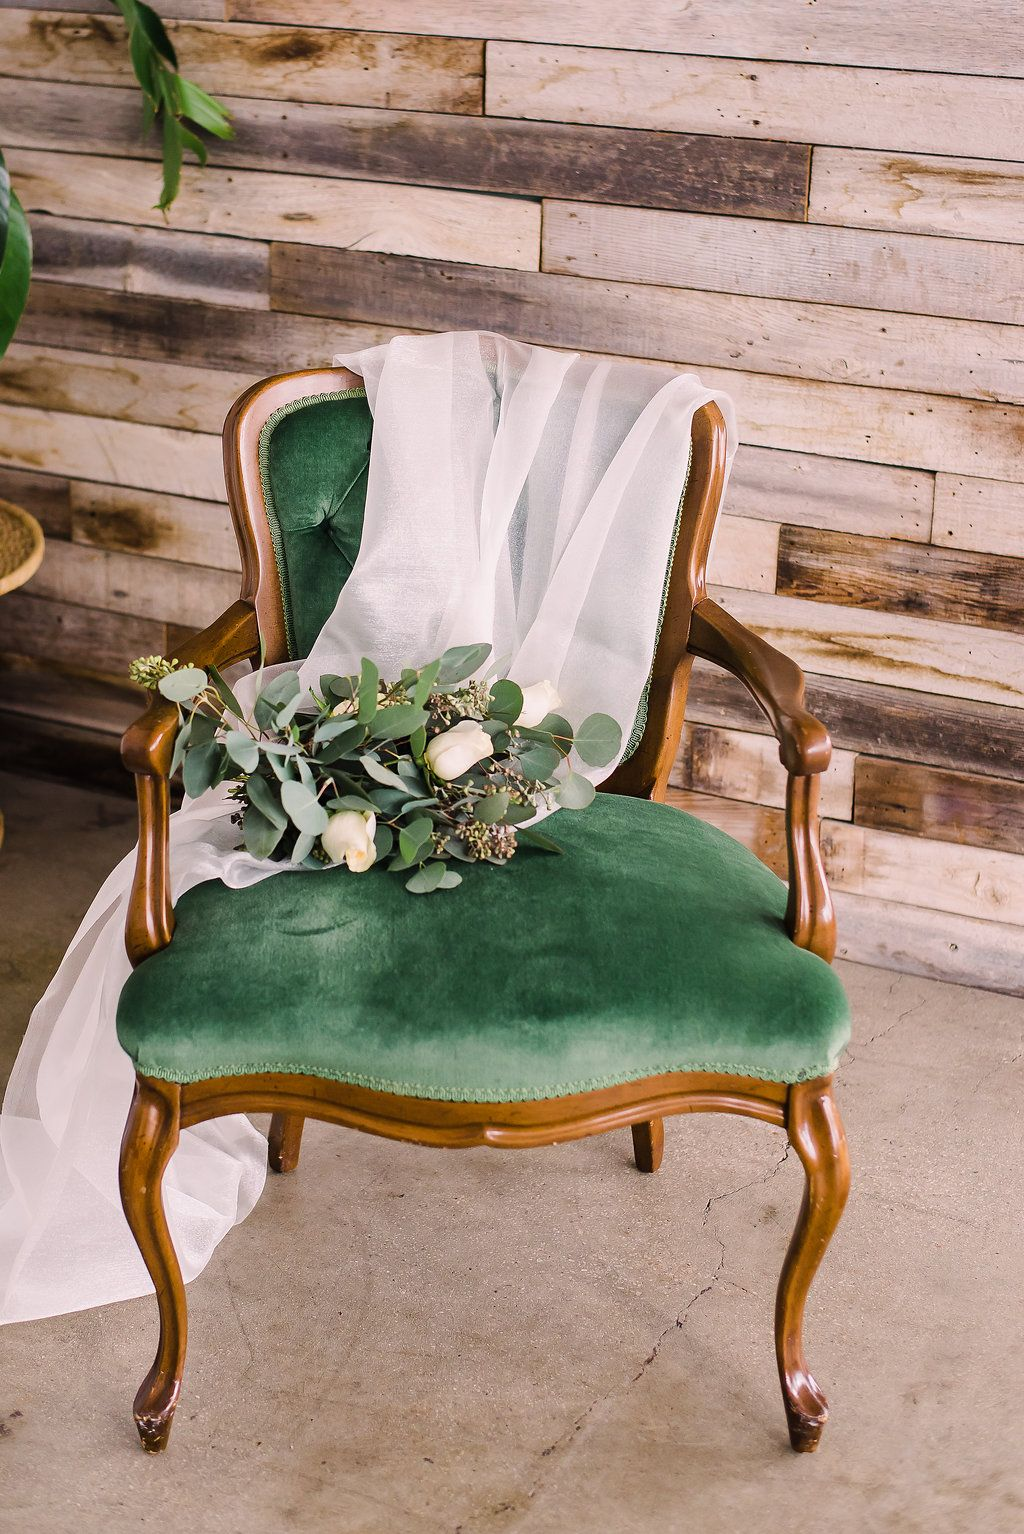 Party Chair Rentals Life Of The Party Chair In 2019 Utah Vintage Rentals Wedding